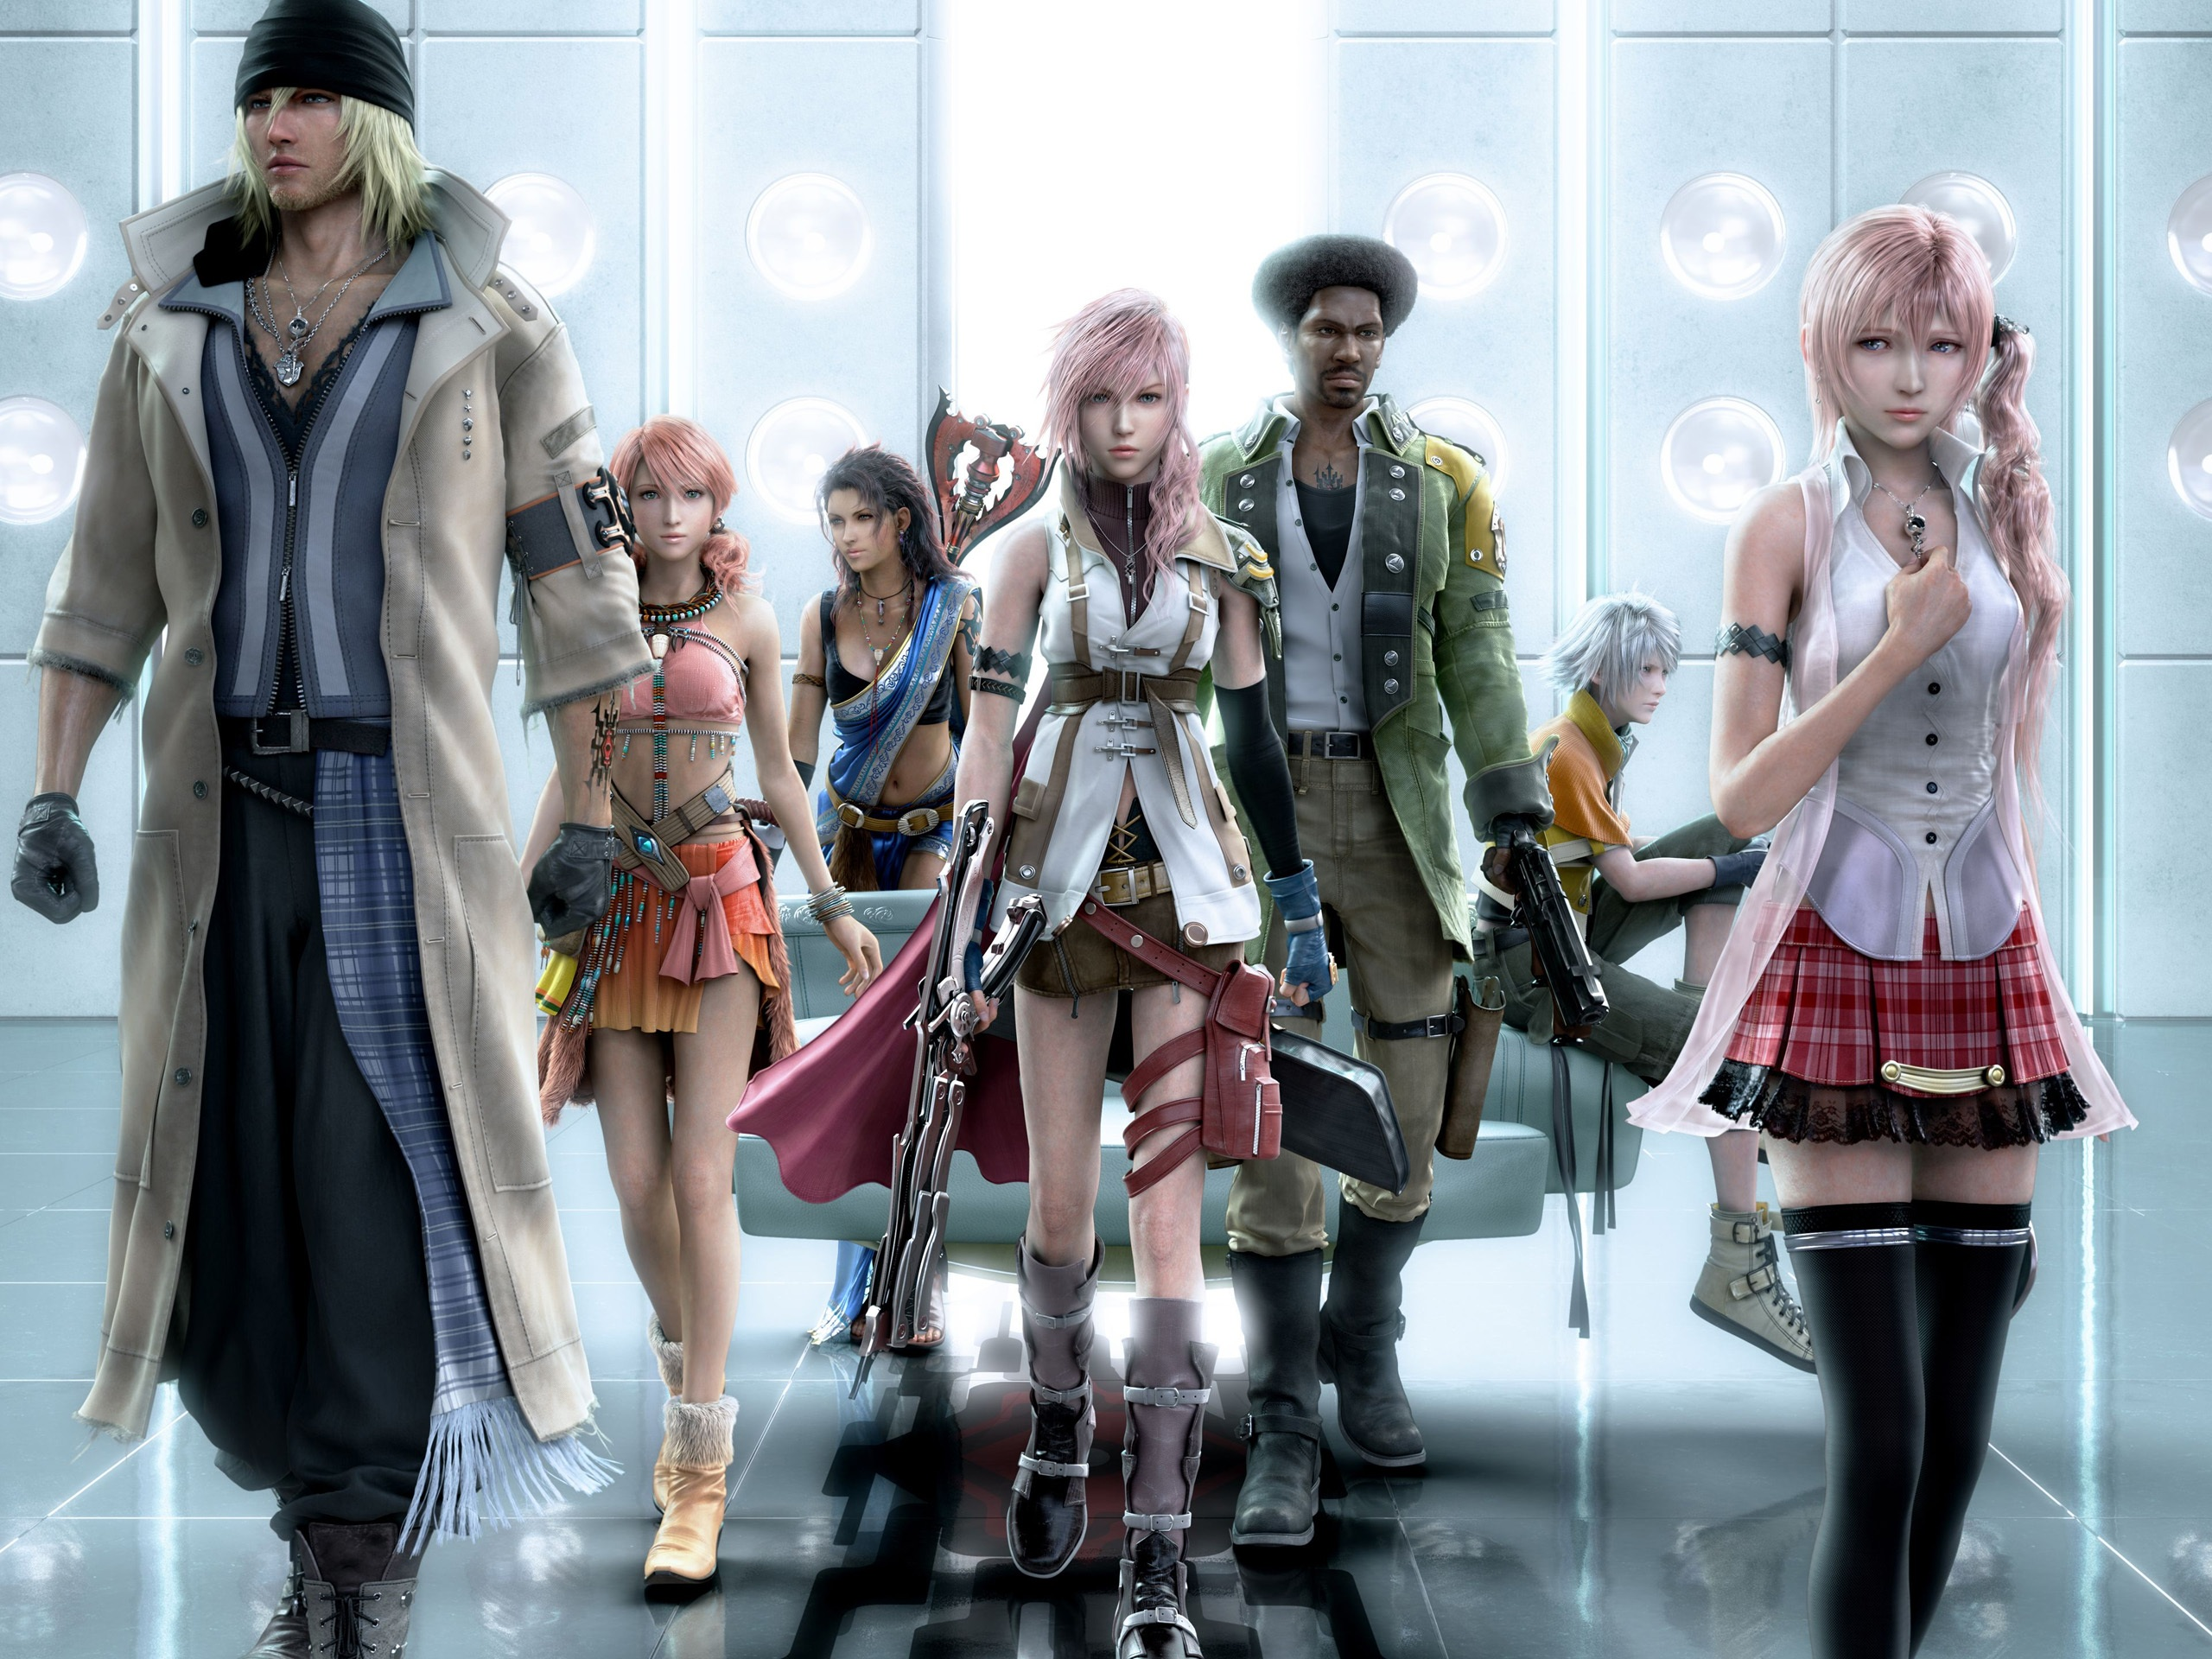 wallpaper final fantasy xiii hd 2560x1920 hd picture, image